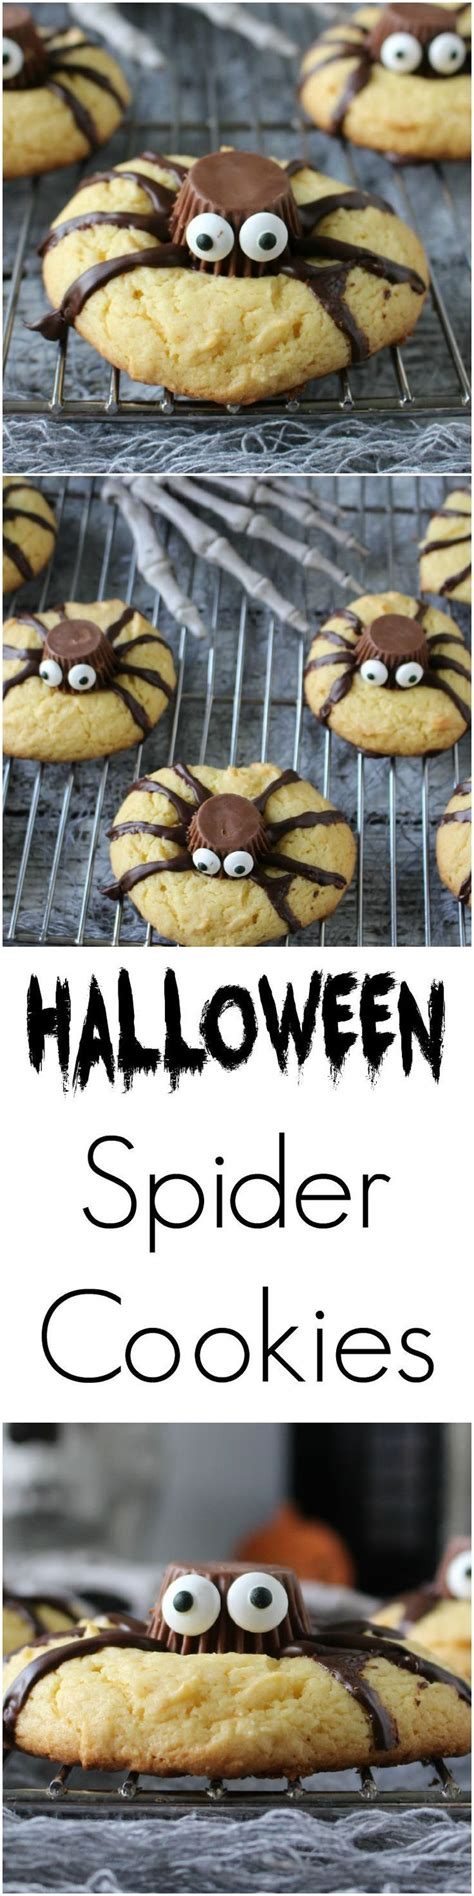 turn your home spooky with these easy halloween best 25 halloween spider ideas on pinterest halloween